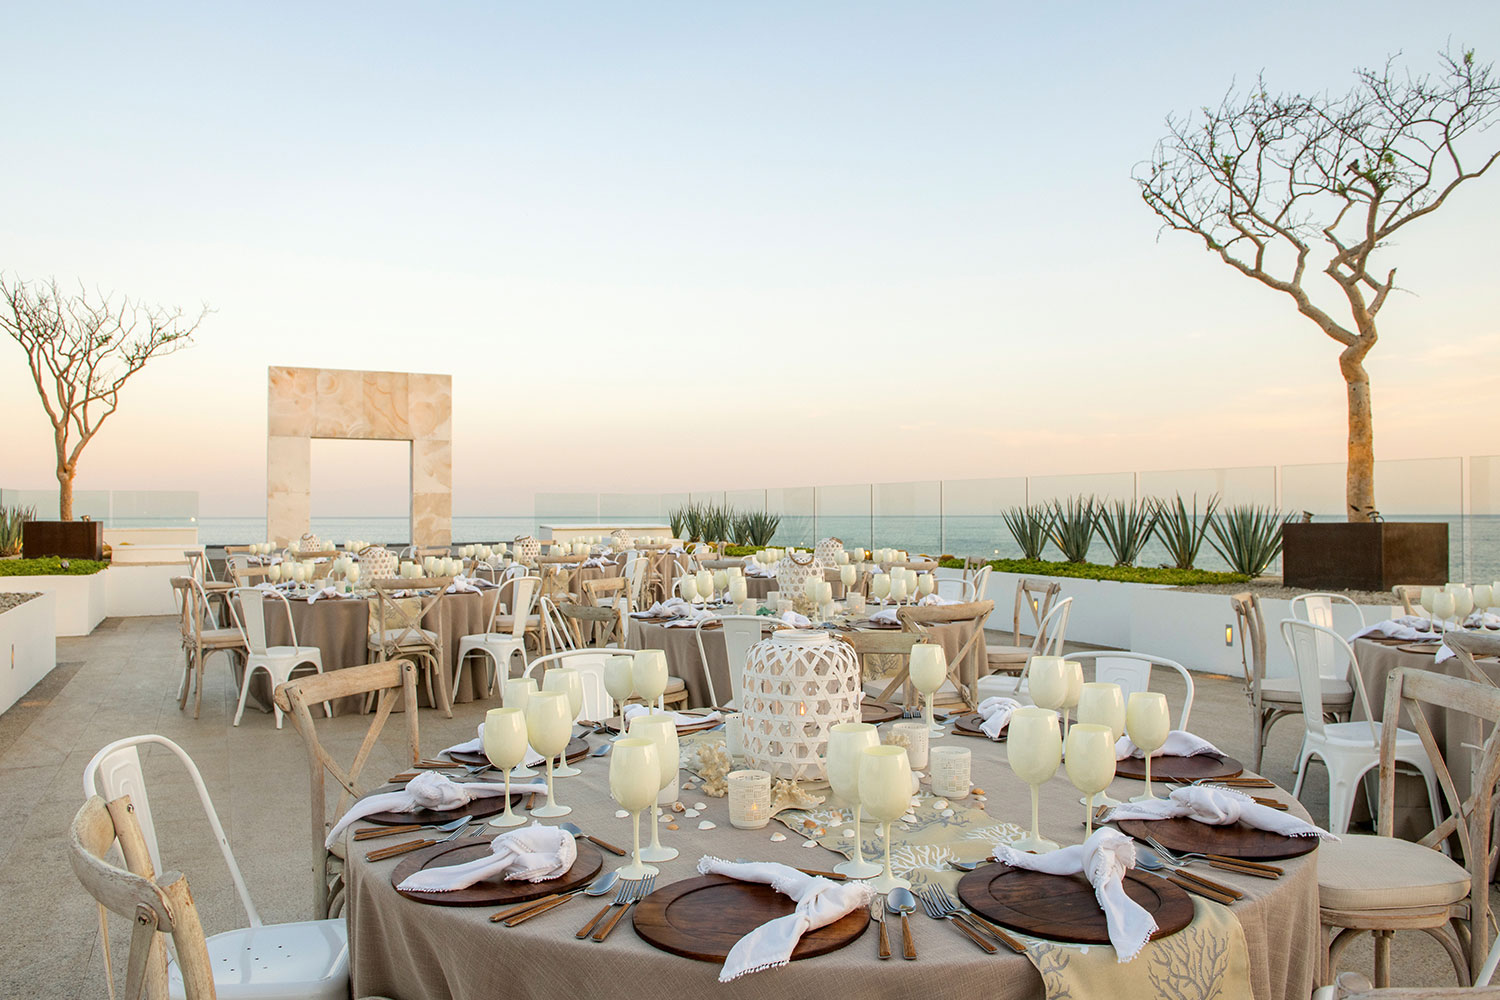 Le Blanc Spa Resort destination wedding venue in Mexico ocean view reception outdoor